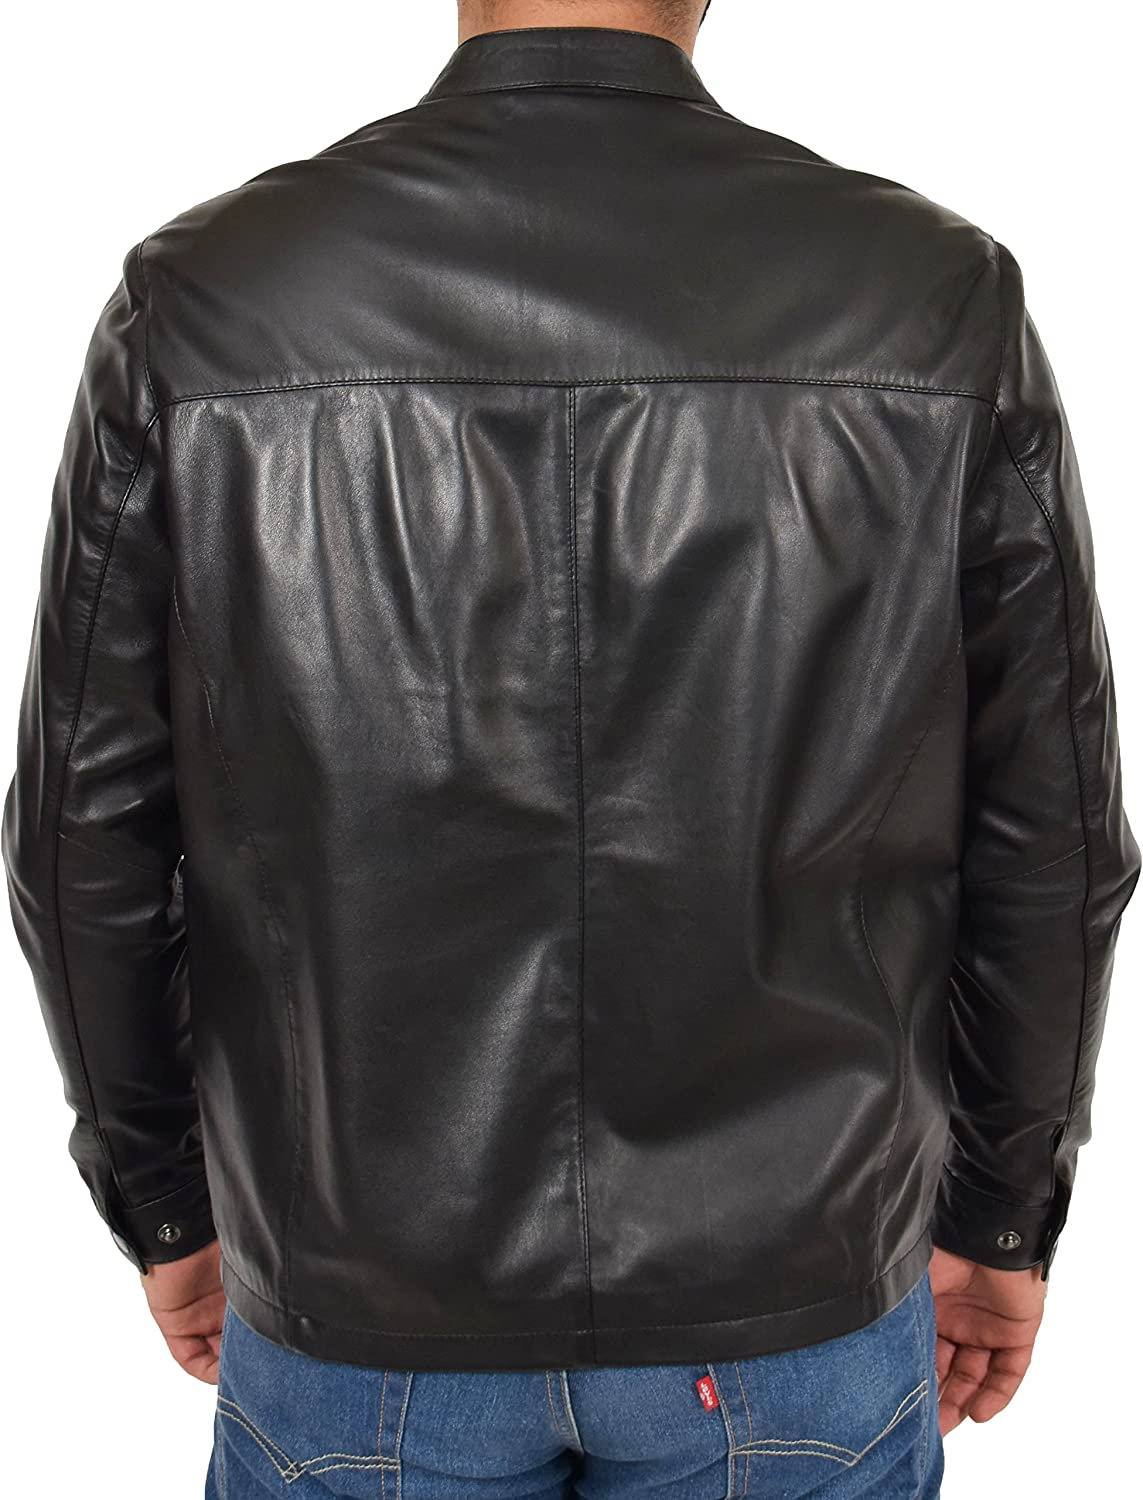 Mens Real Black Leather Jacket Zip Up Casual Standing Collar Regular Fit Coat Amos